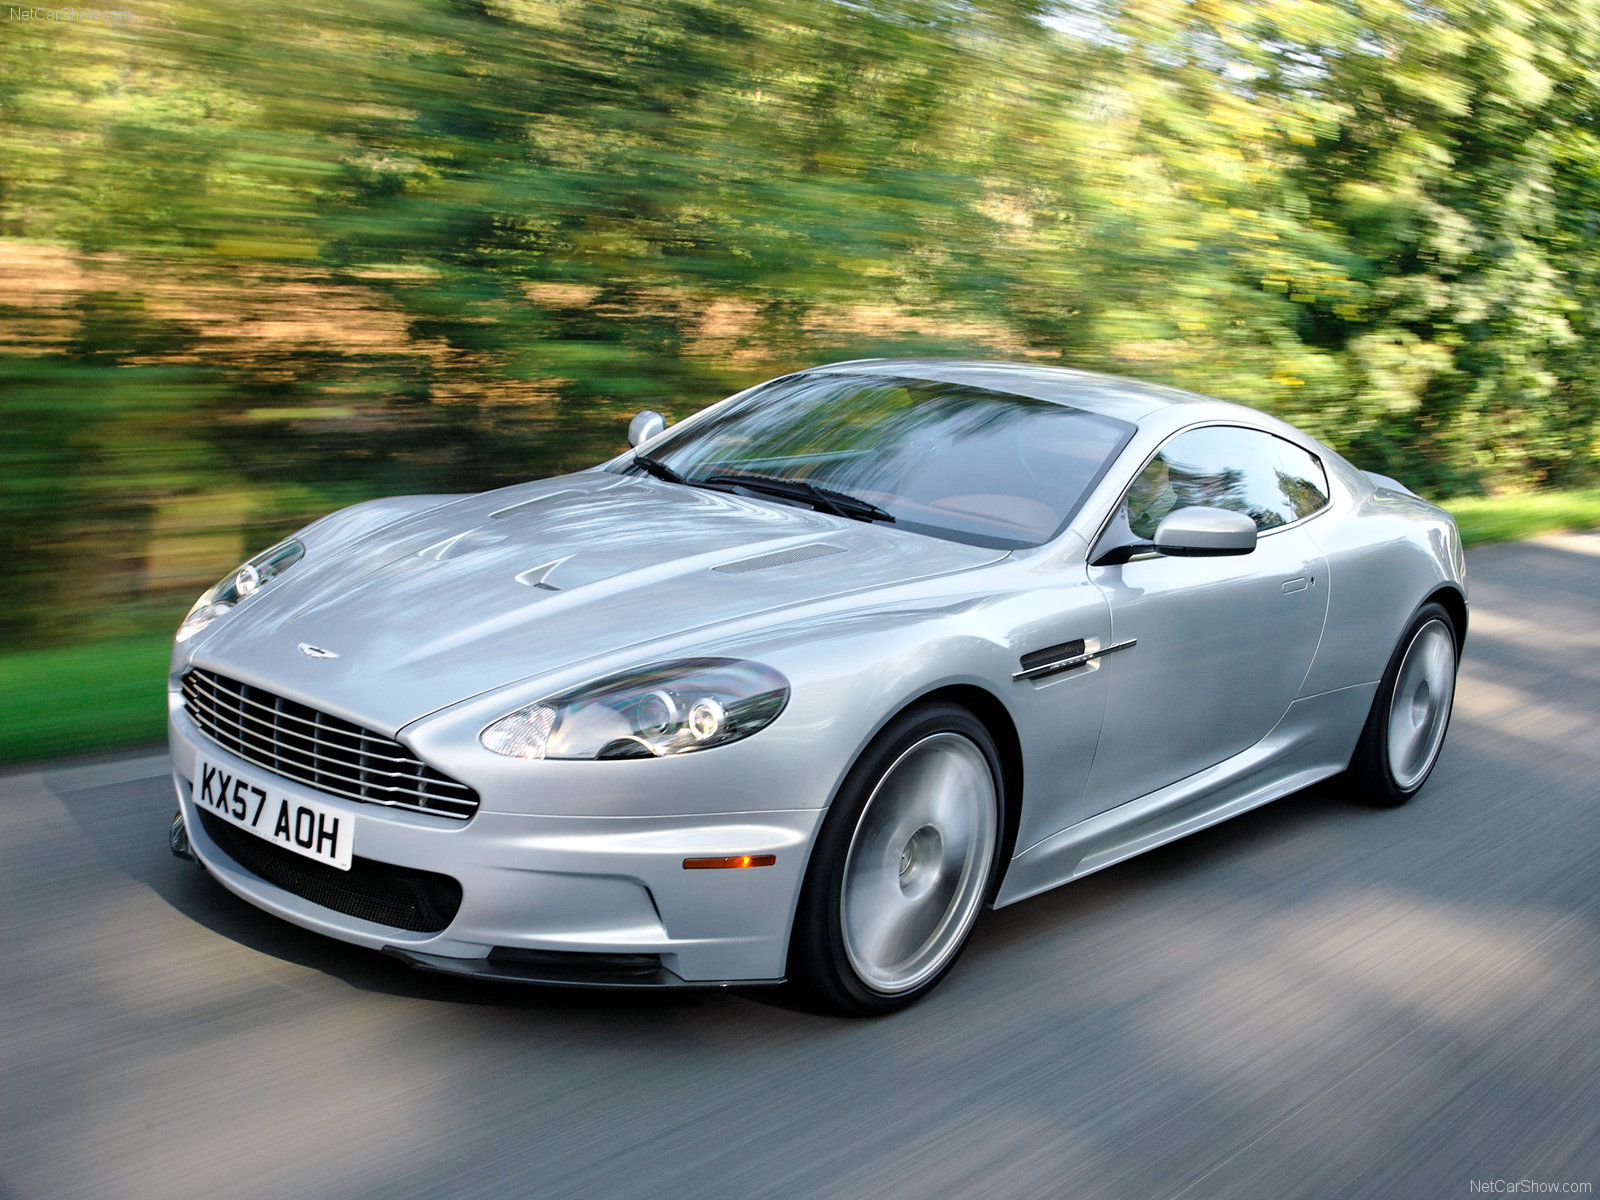 Aston Martin DBS Lightning Silver photo 49851